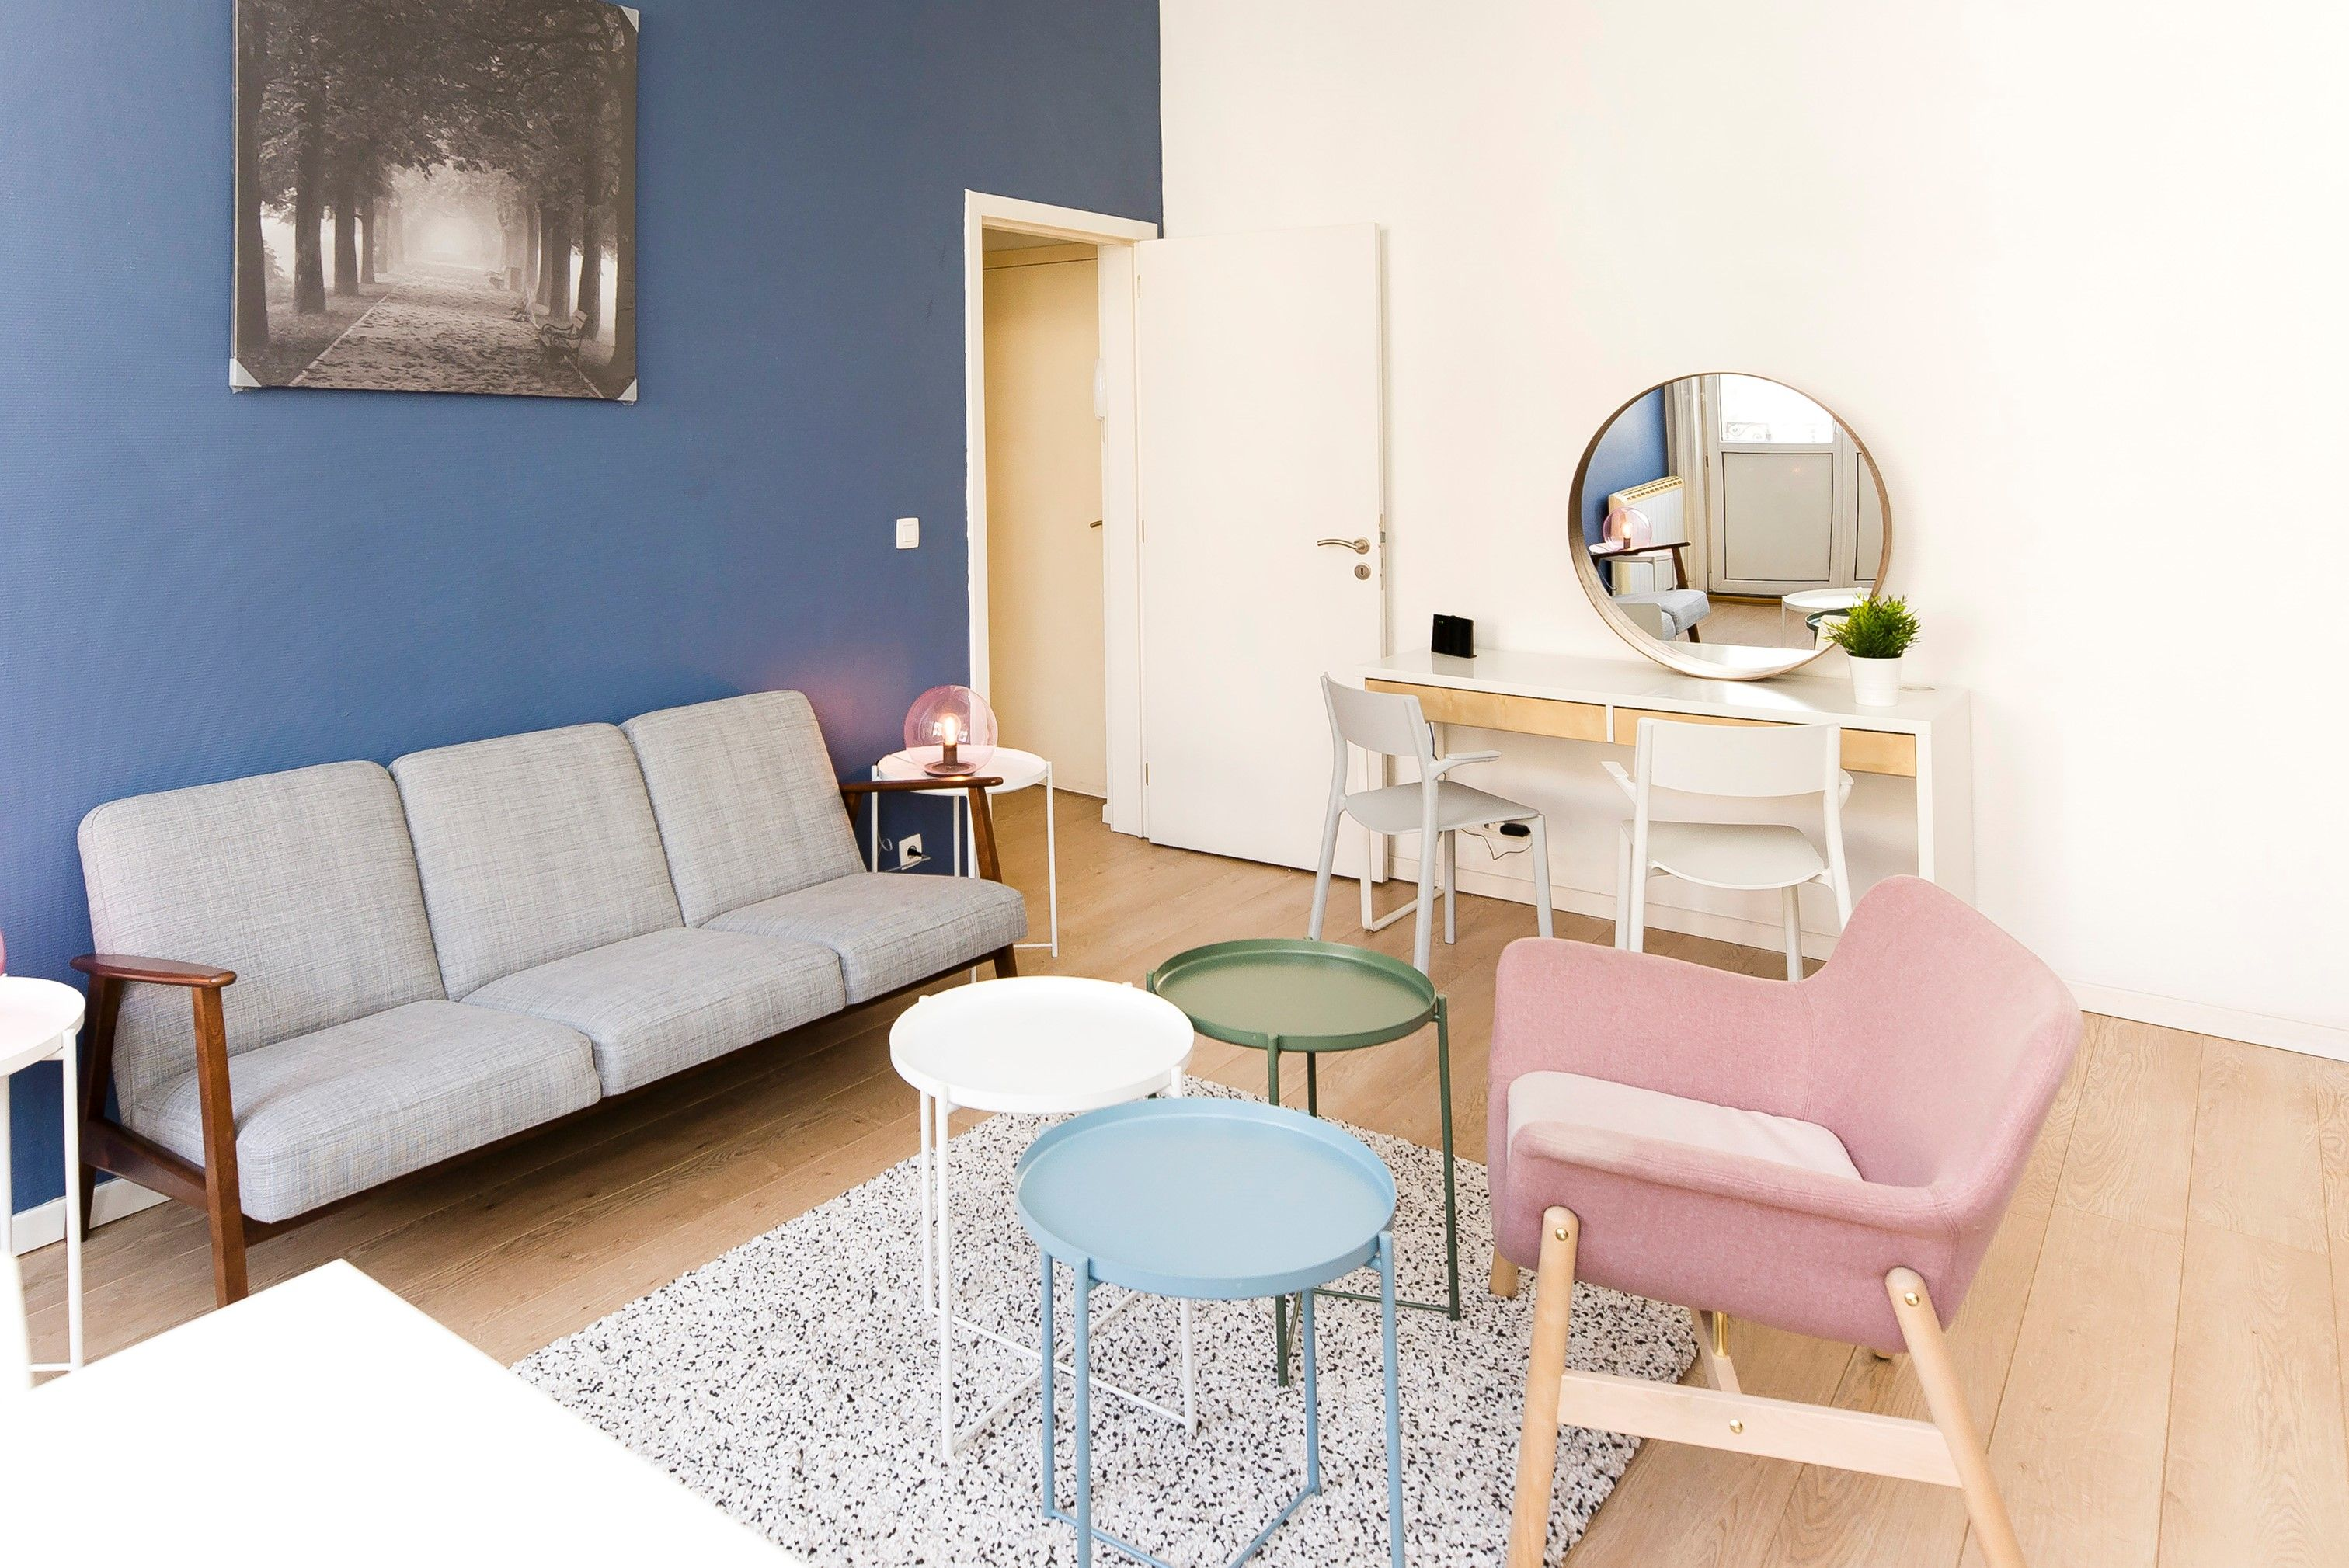 Nice And Lightly One Bedroom Apartment About 35m On The 2nd Floor Of A House Located In The District Very Sought After From The Chatelain To Ixelles Good L In 2020